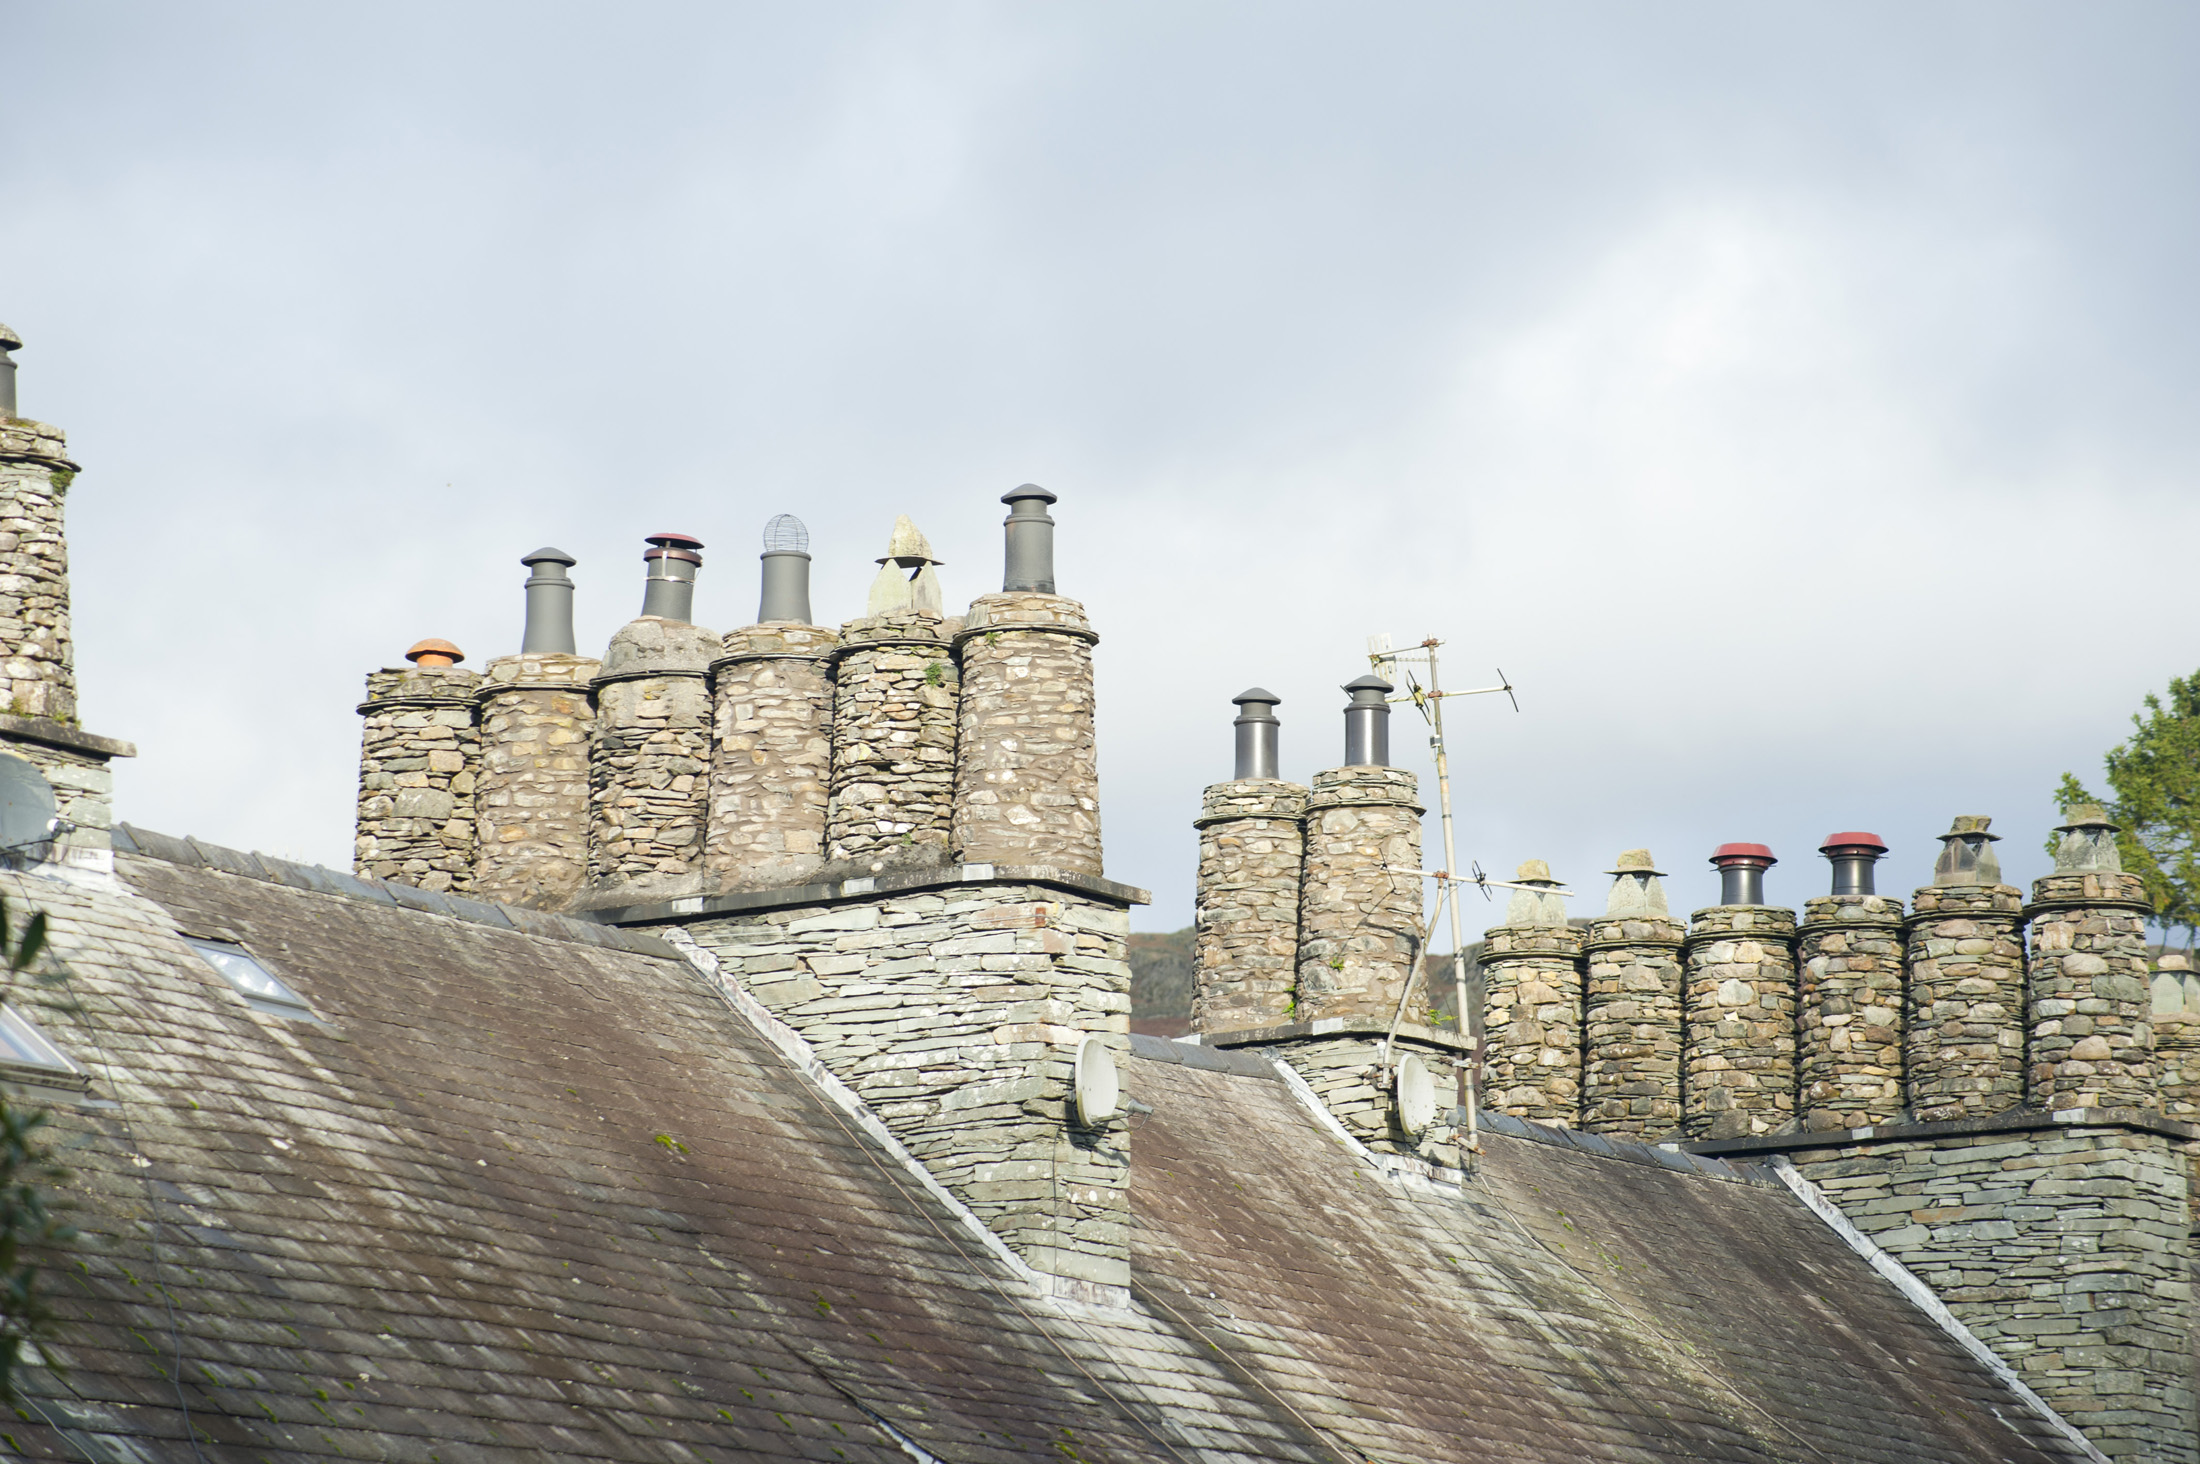 Traditional cylindrical stone chimney pots on the rooftops of the cottages in Skelwith Bridge, a village in the Englsih Lake District in Cumbria